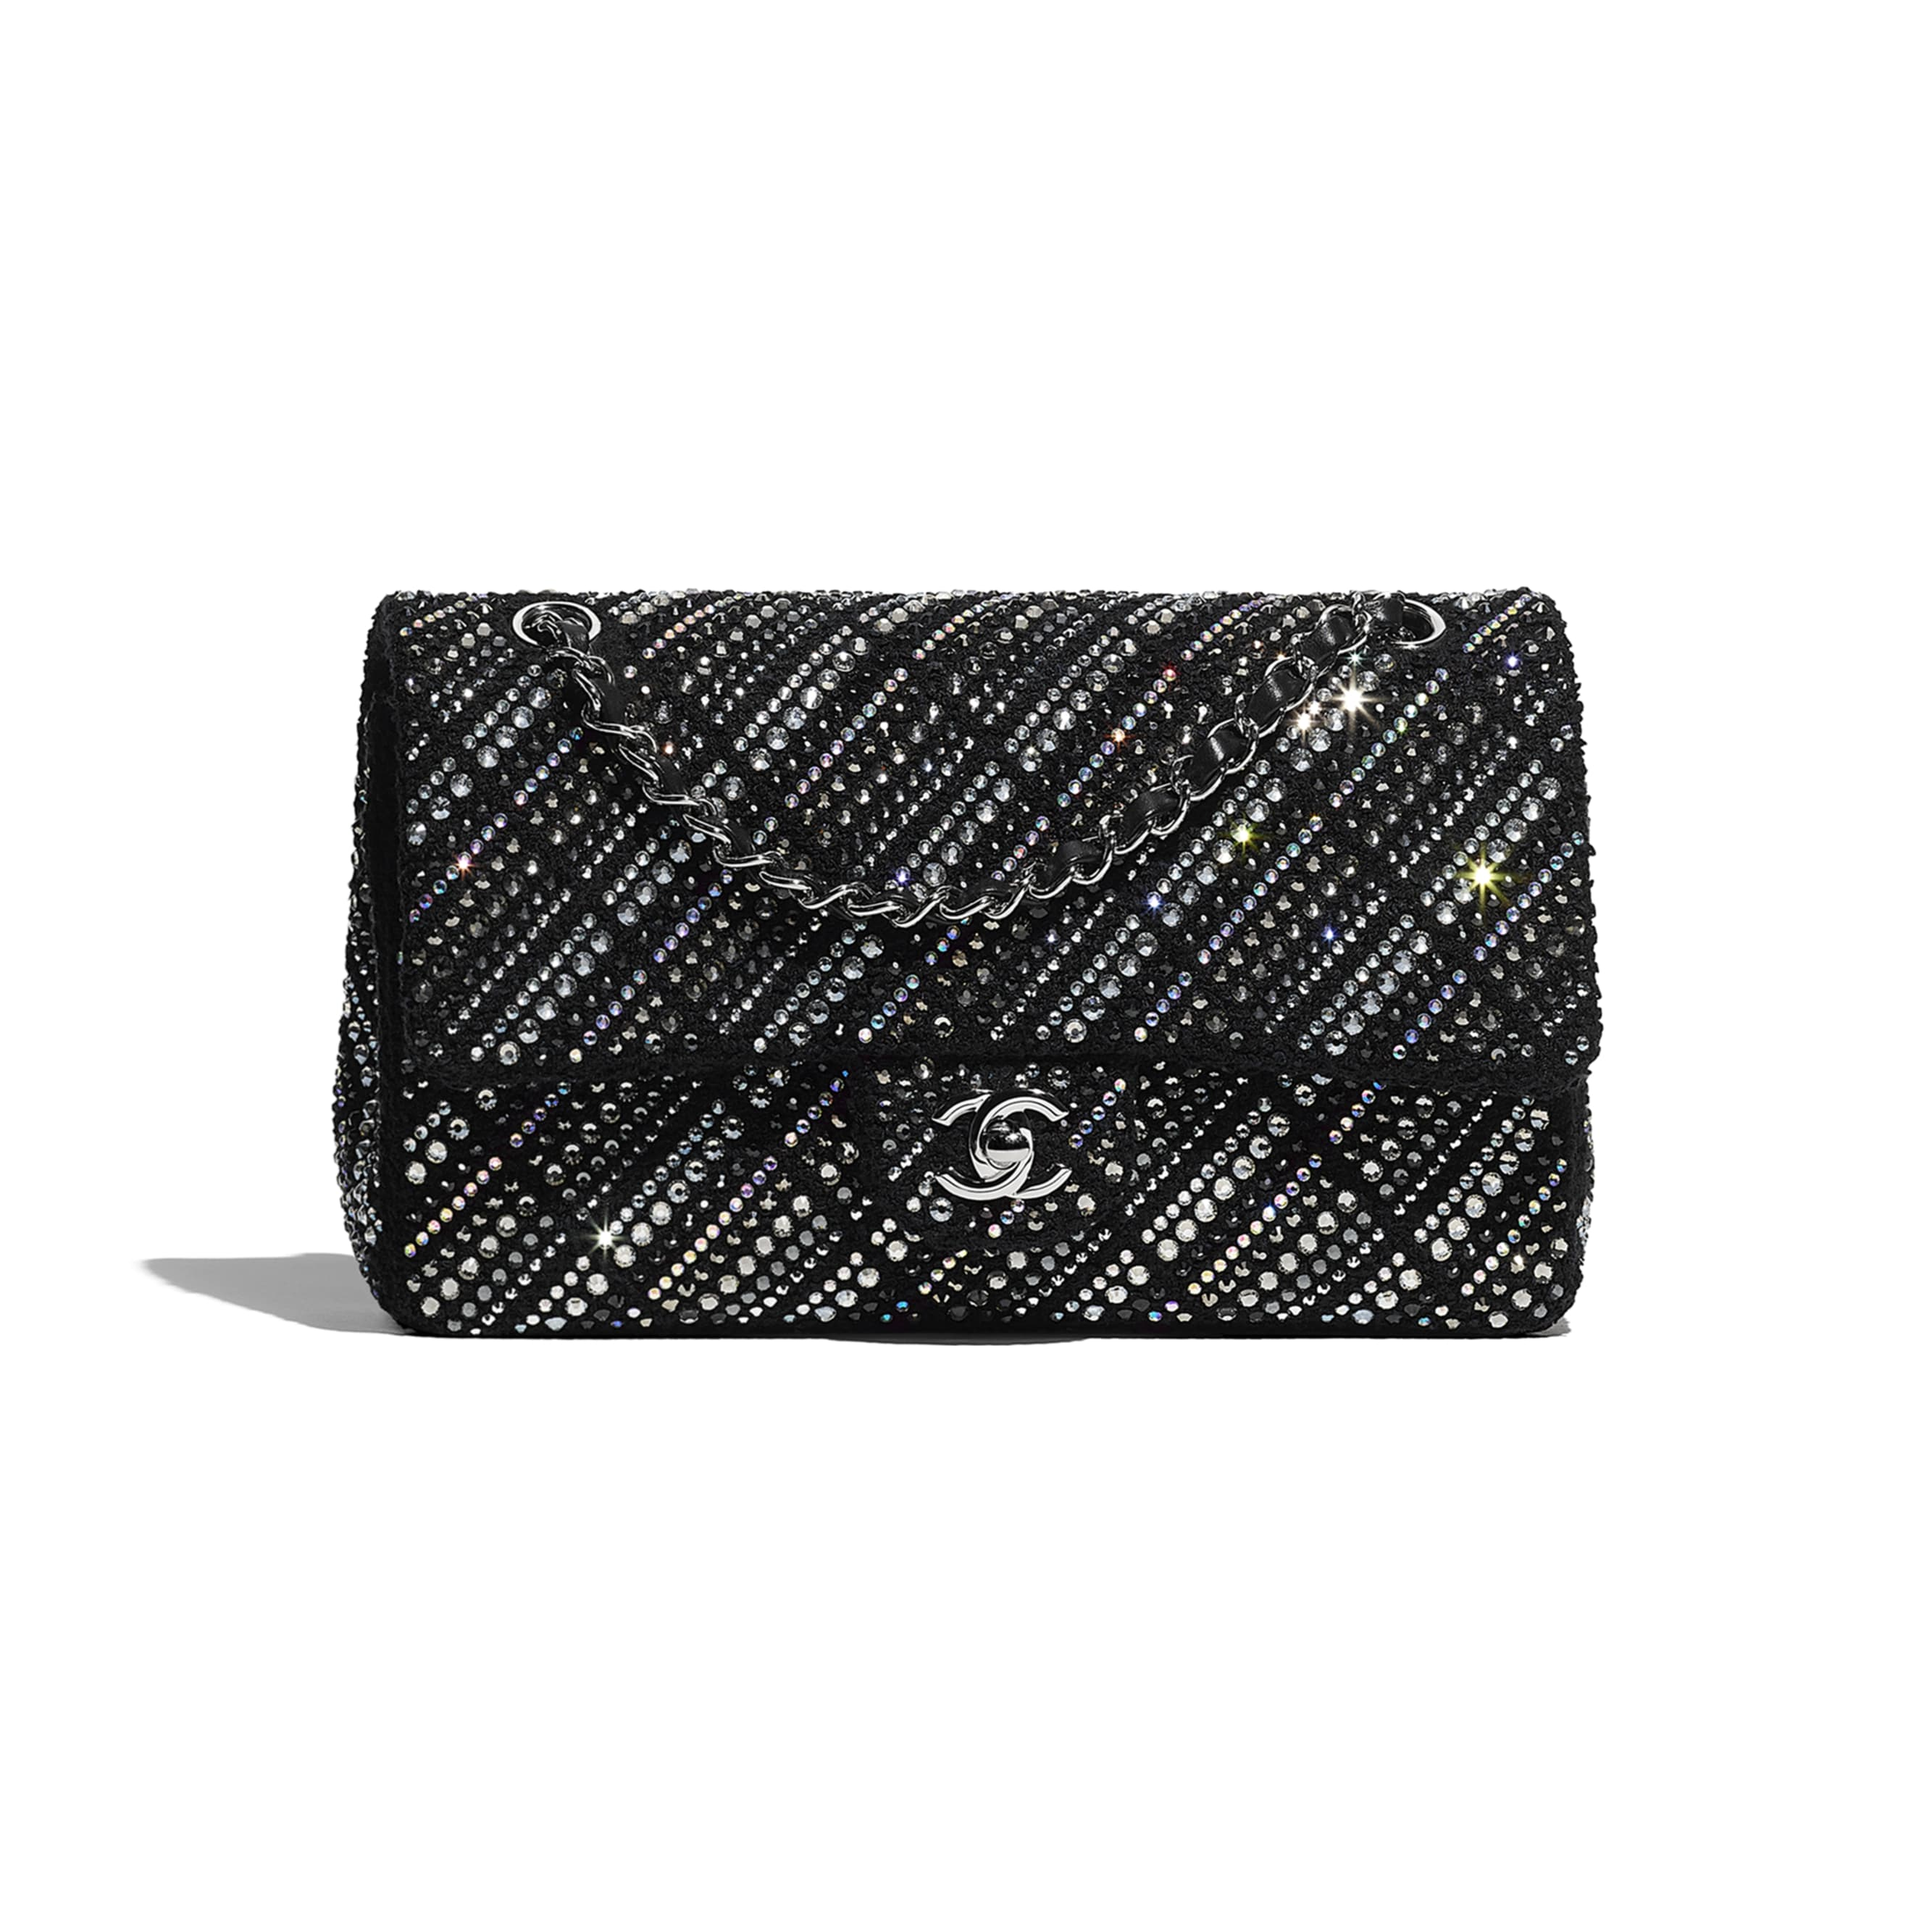 Classic Handbag - Black - Tweed, Diamantés & Silver Metal - CHANEL - Default view - see standard sized version